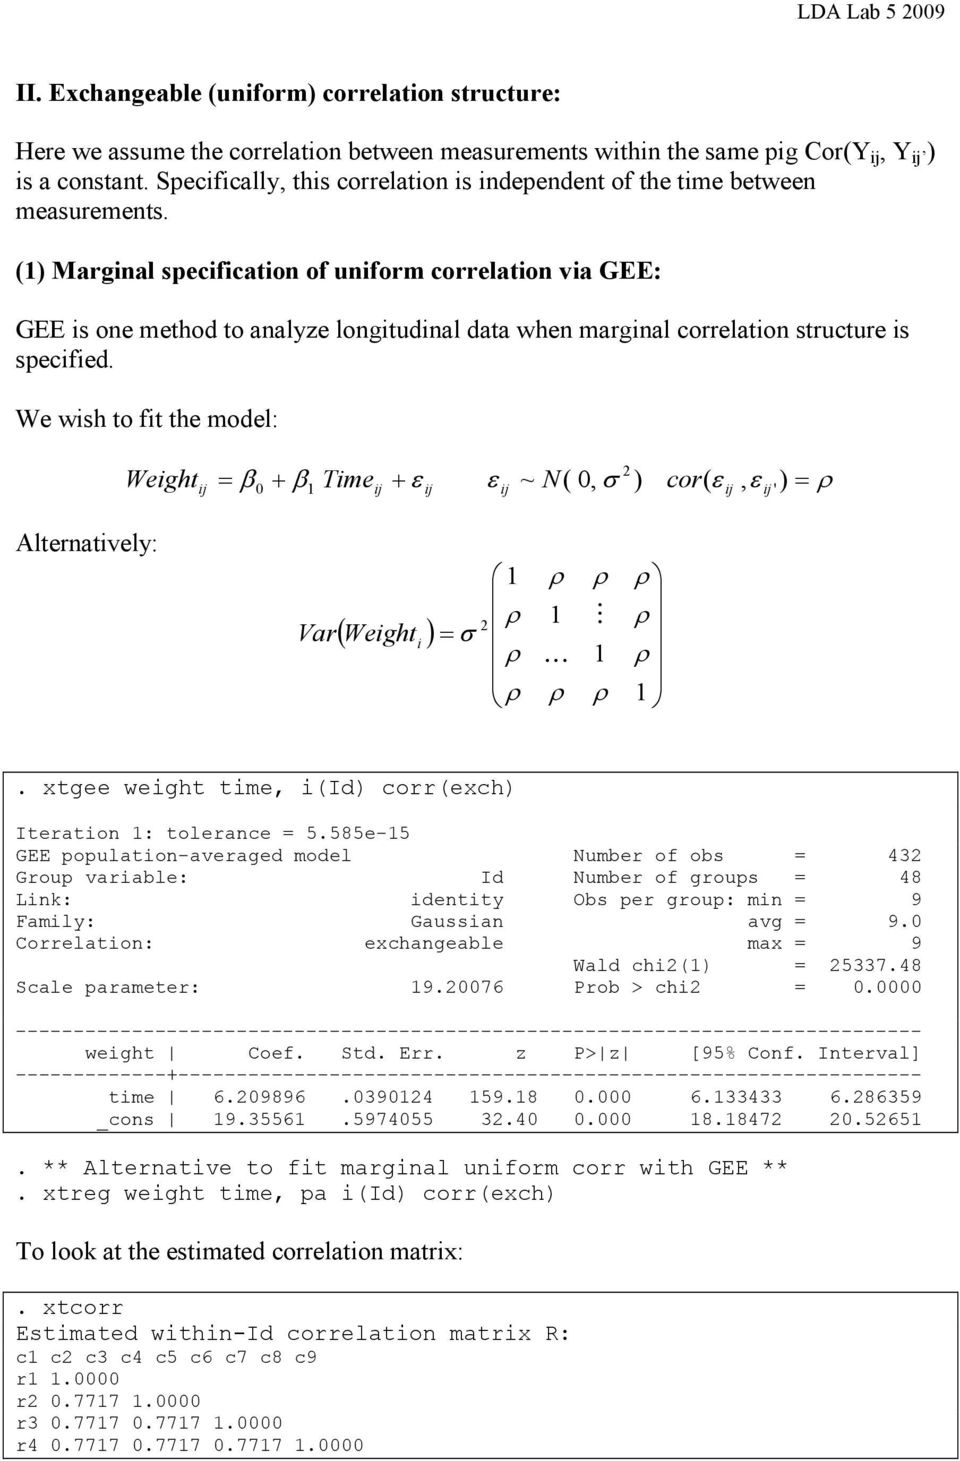 (1) Marginal specification of uniform correlation via GEE: GEE is one method to analyze longitudinal data when marginal correlation structure is specified.